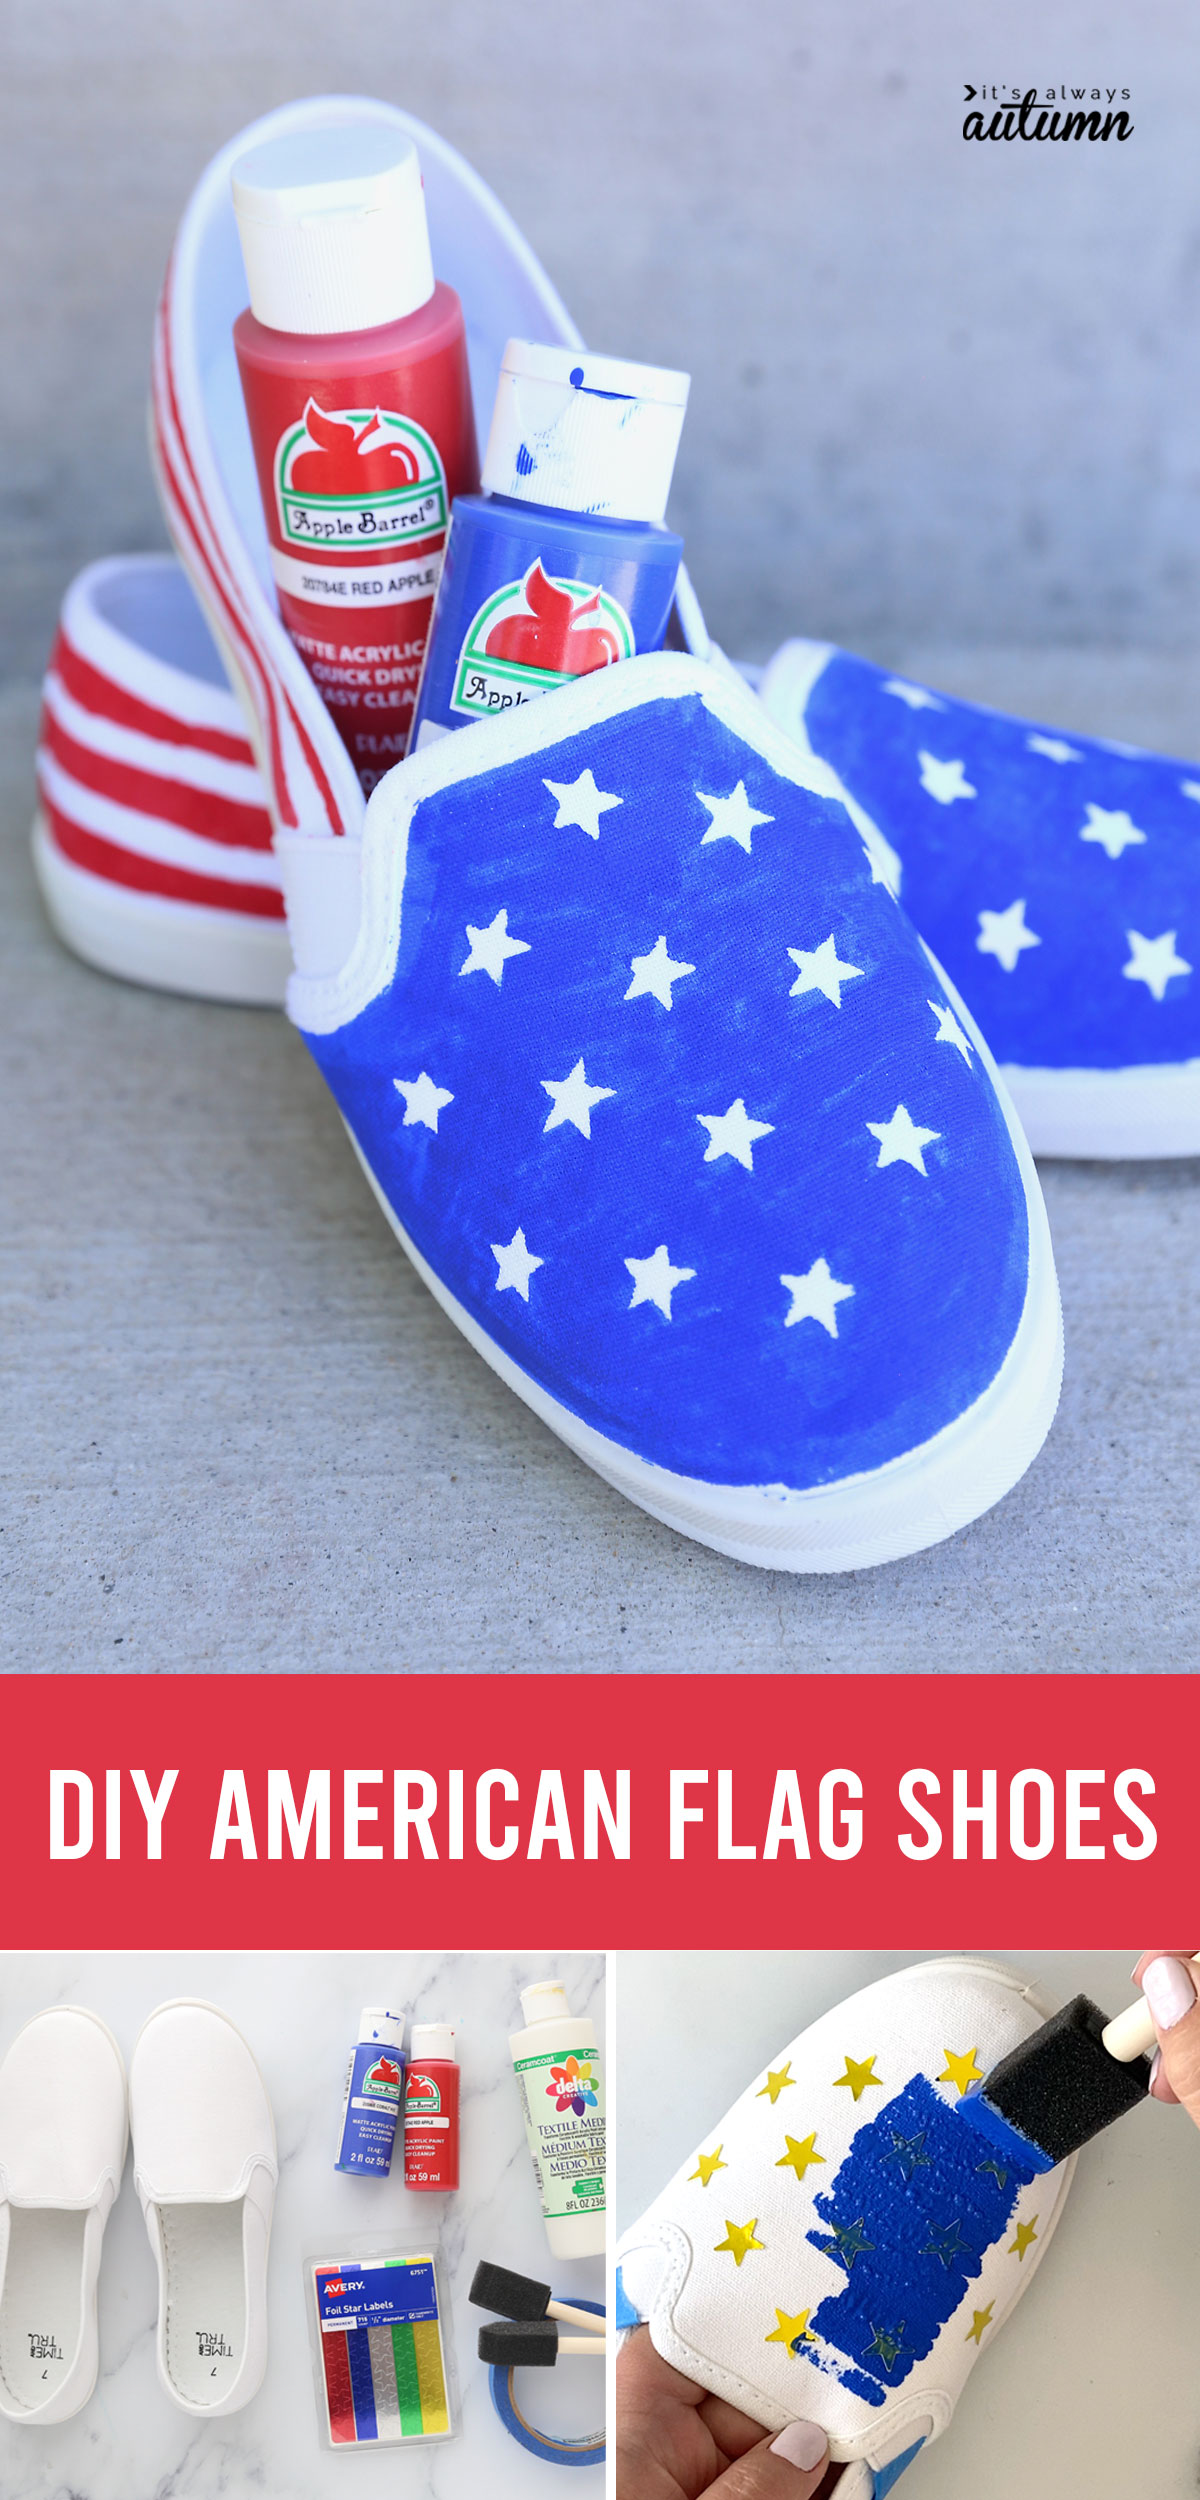 DIY American flag shoes; supplies; painting a shoe